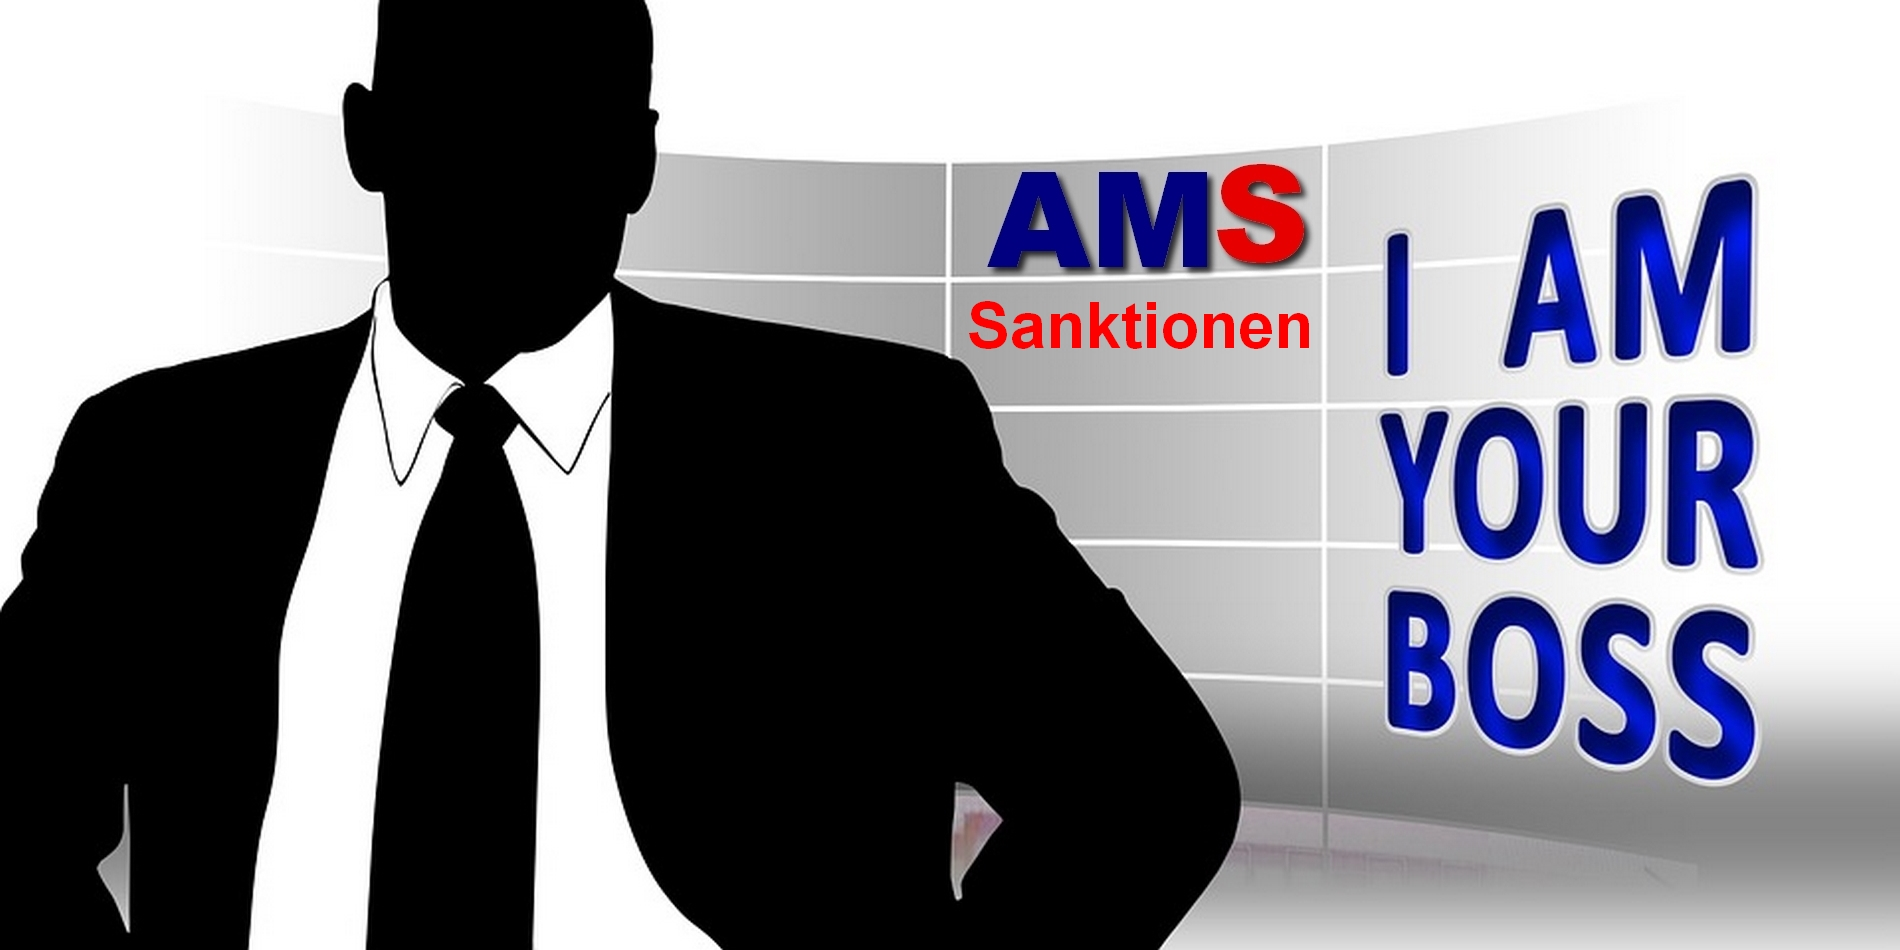 AMS - I am your Boss / Sanktionen